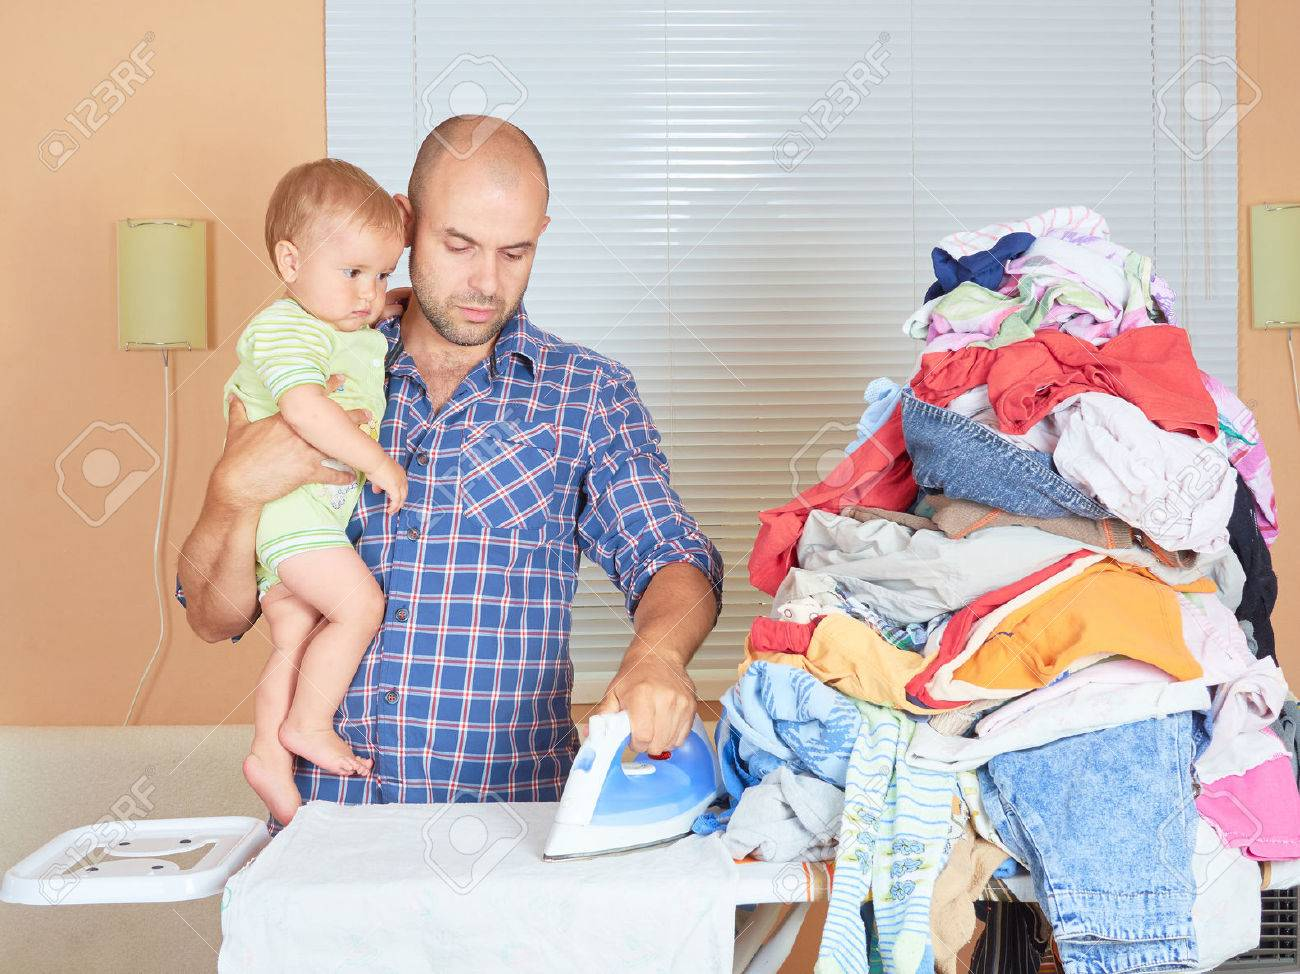 Caucasian man father and son in his hands, ironed clothes in the room near the window. Homework. - 59949789